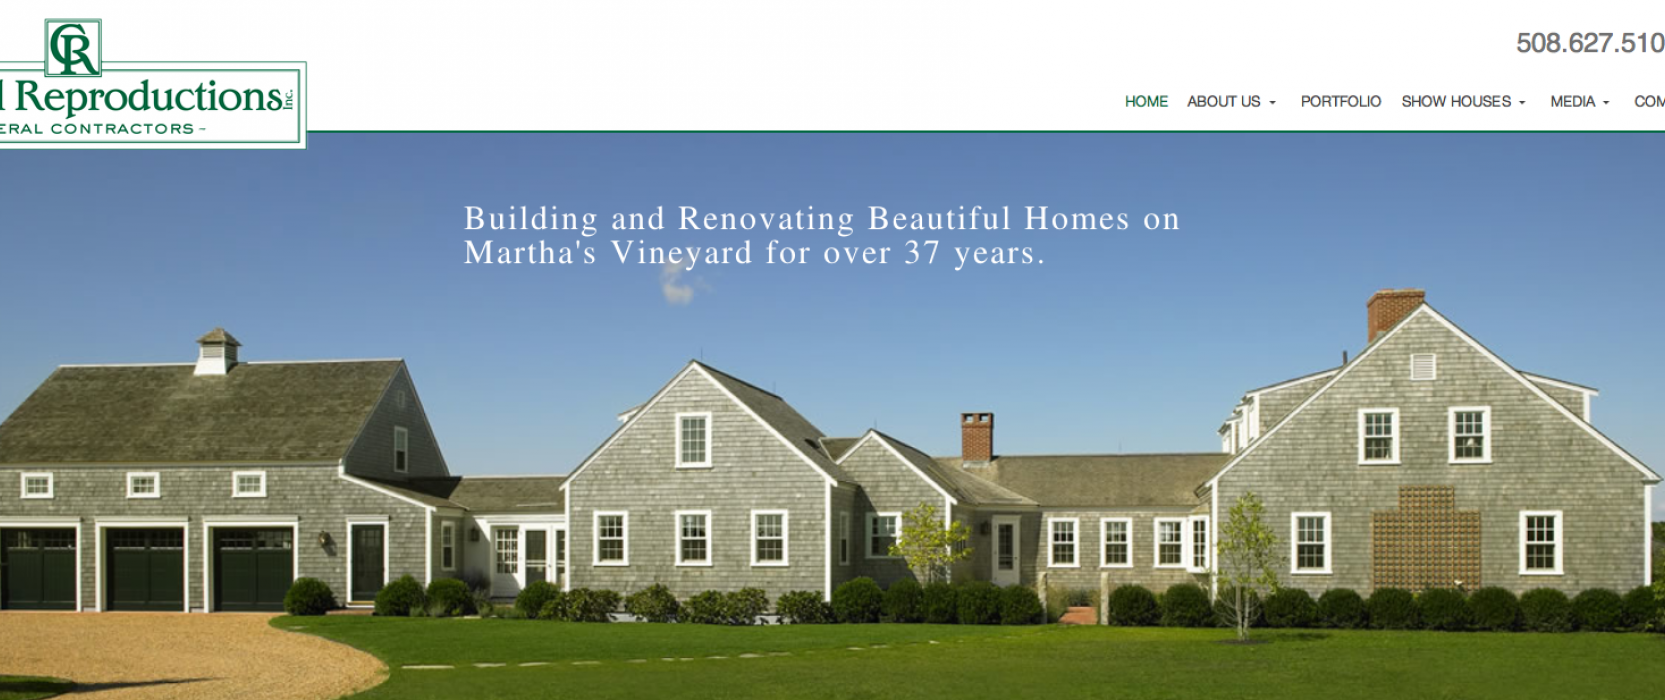 Colonial Reproductions Launches New Website